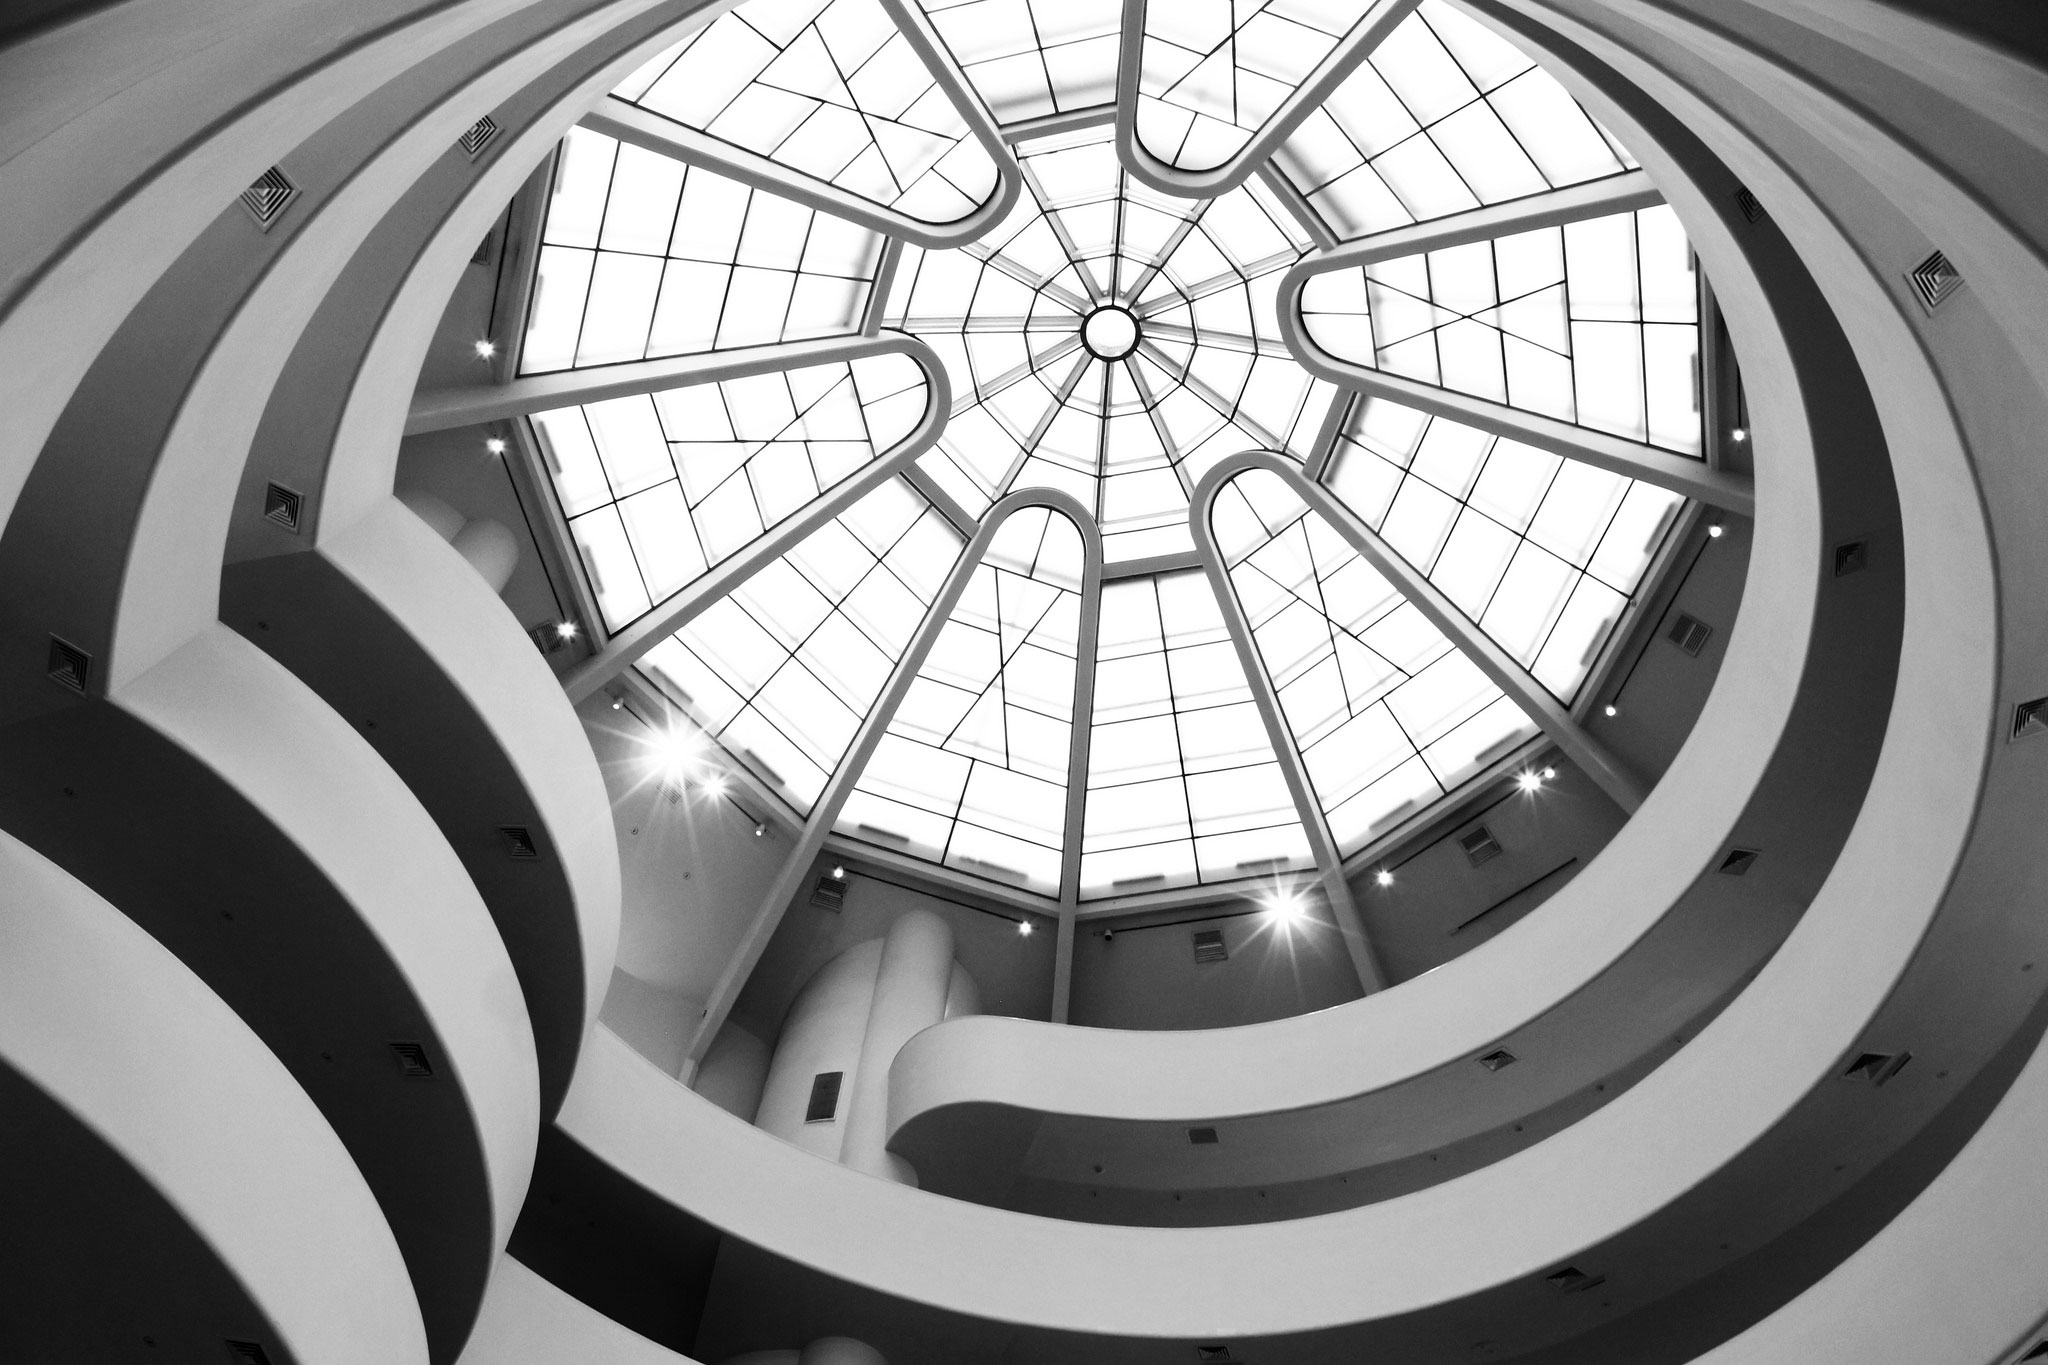 Guggenheim Museum in New York City